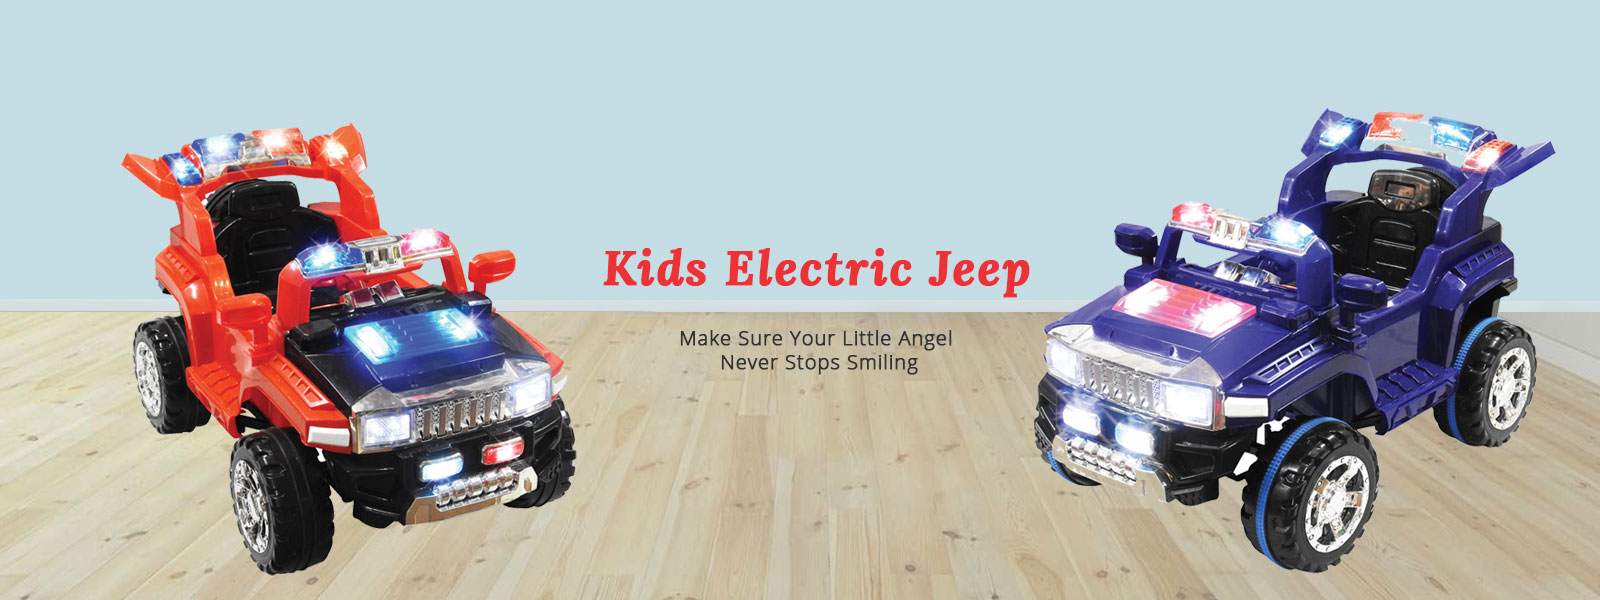 Kids Electric Jeep Manufacturers in Bhubaneswar